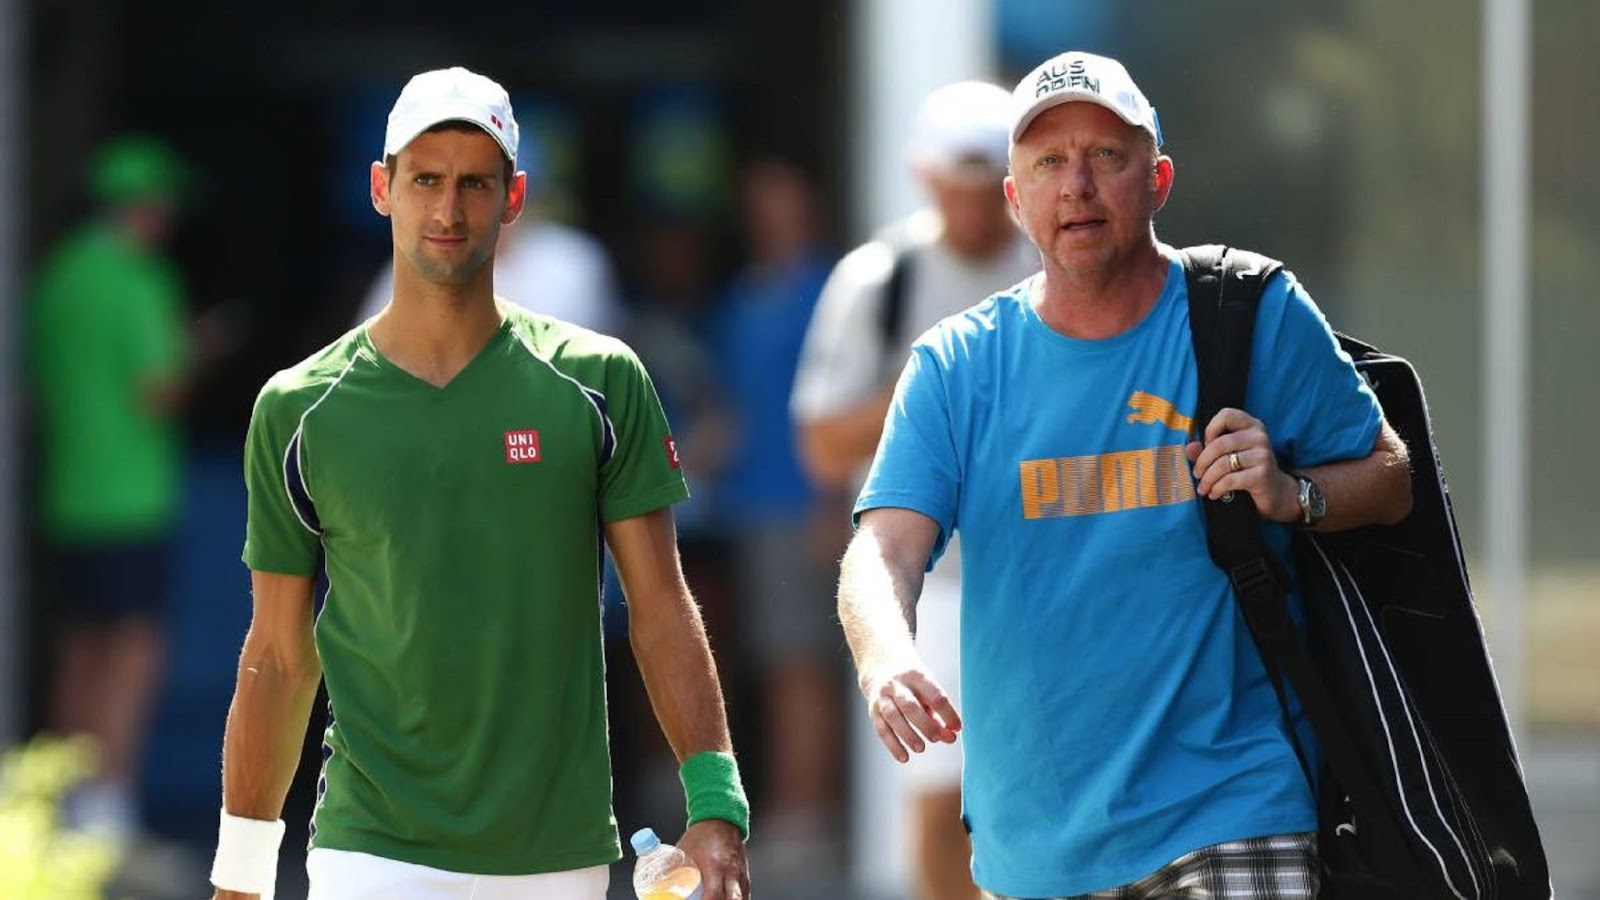 NOVAK DJOKOVIC, BORIS BECKER 3